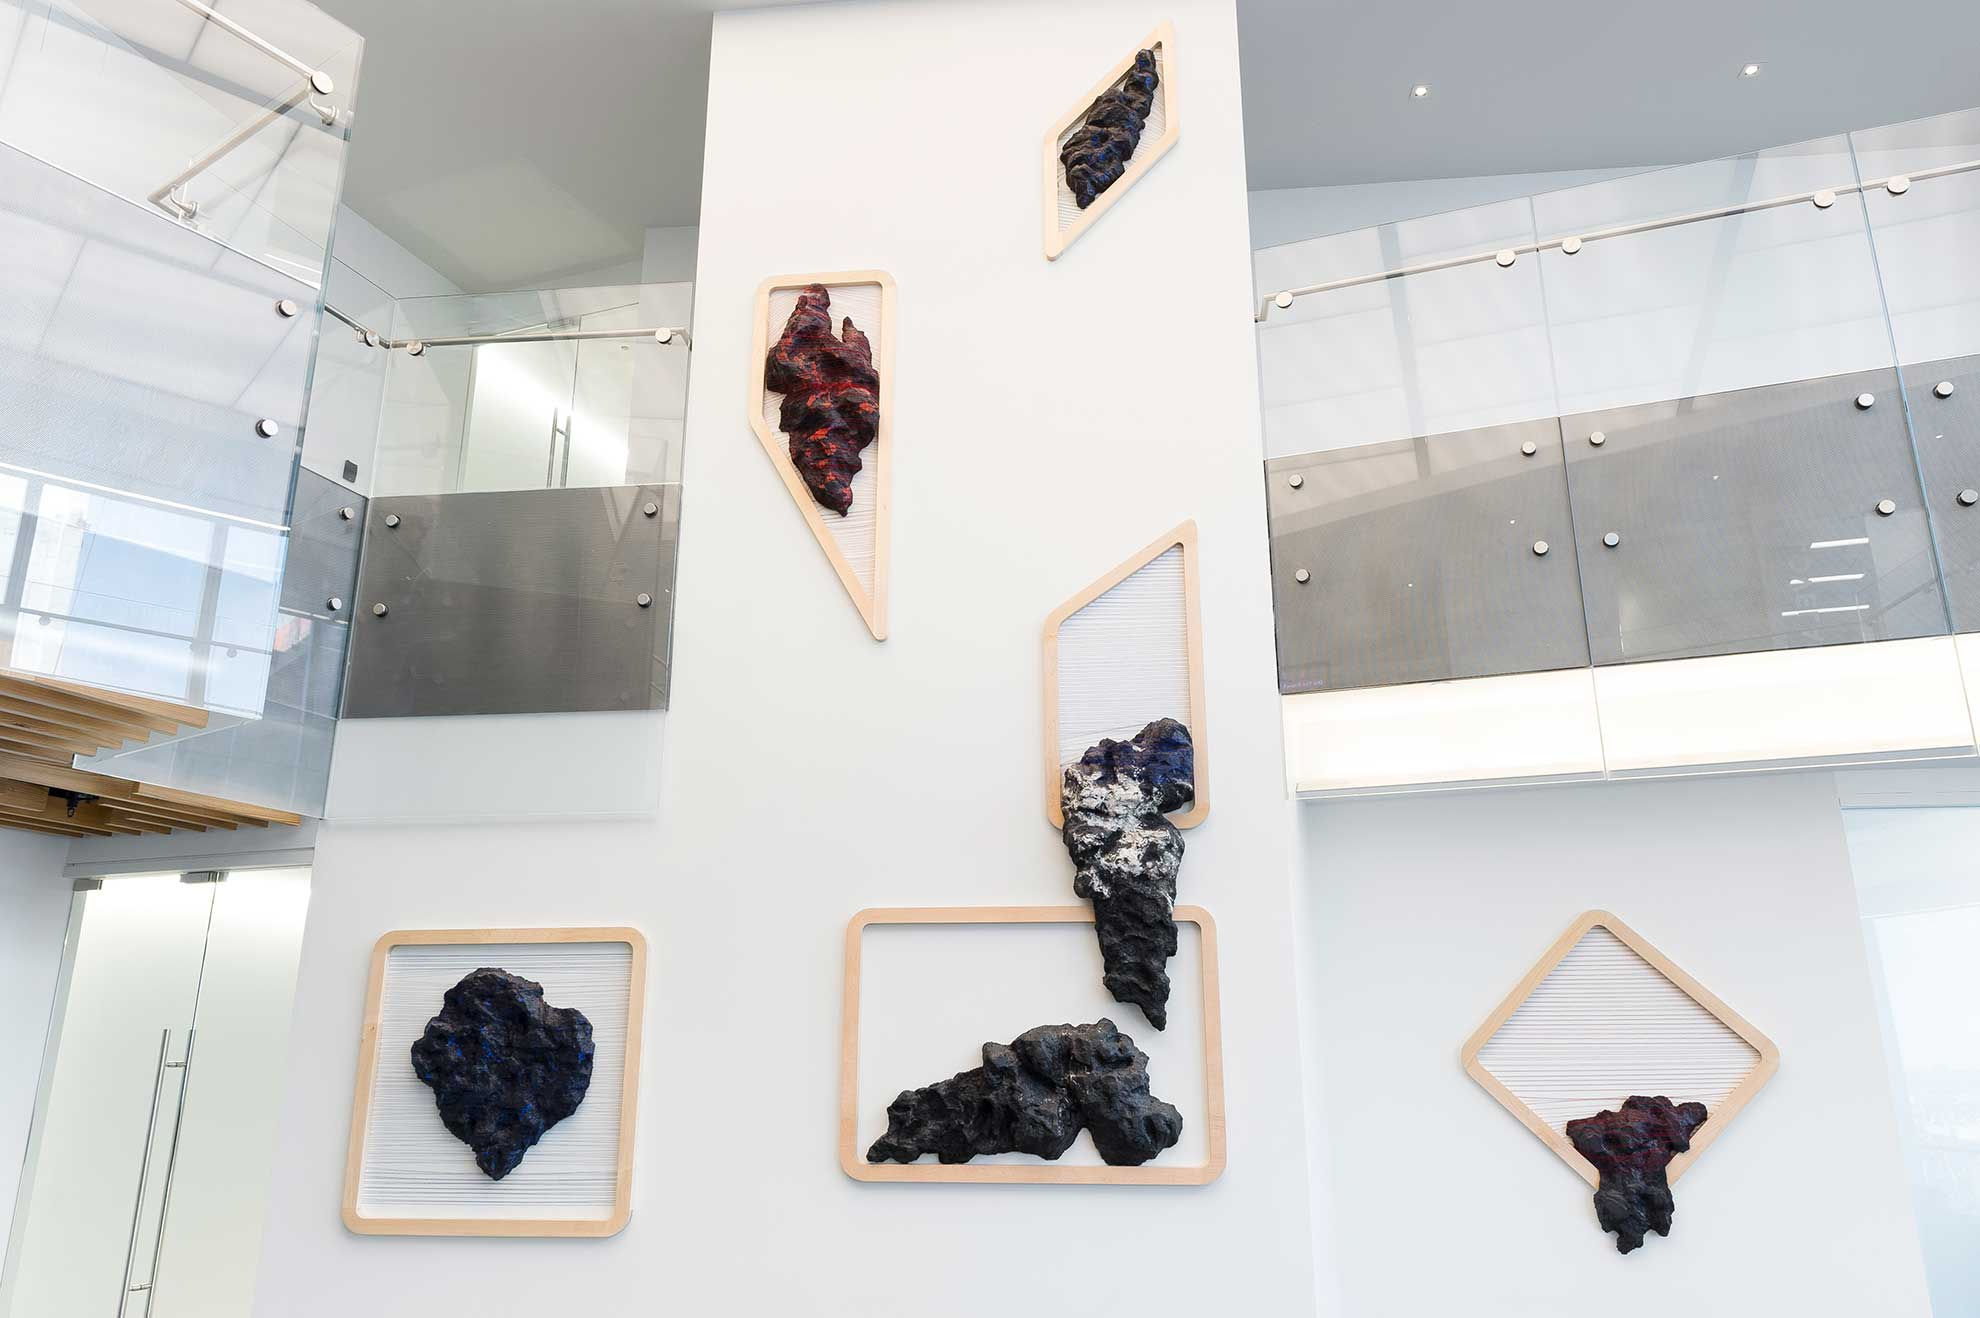 Image of rock and string installation in lobby